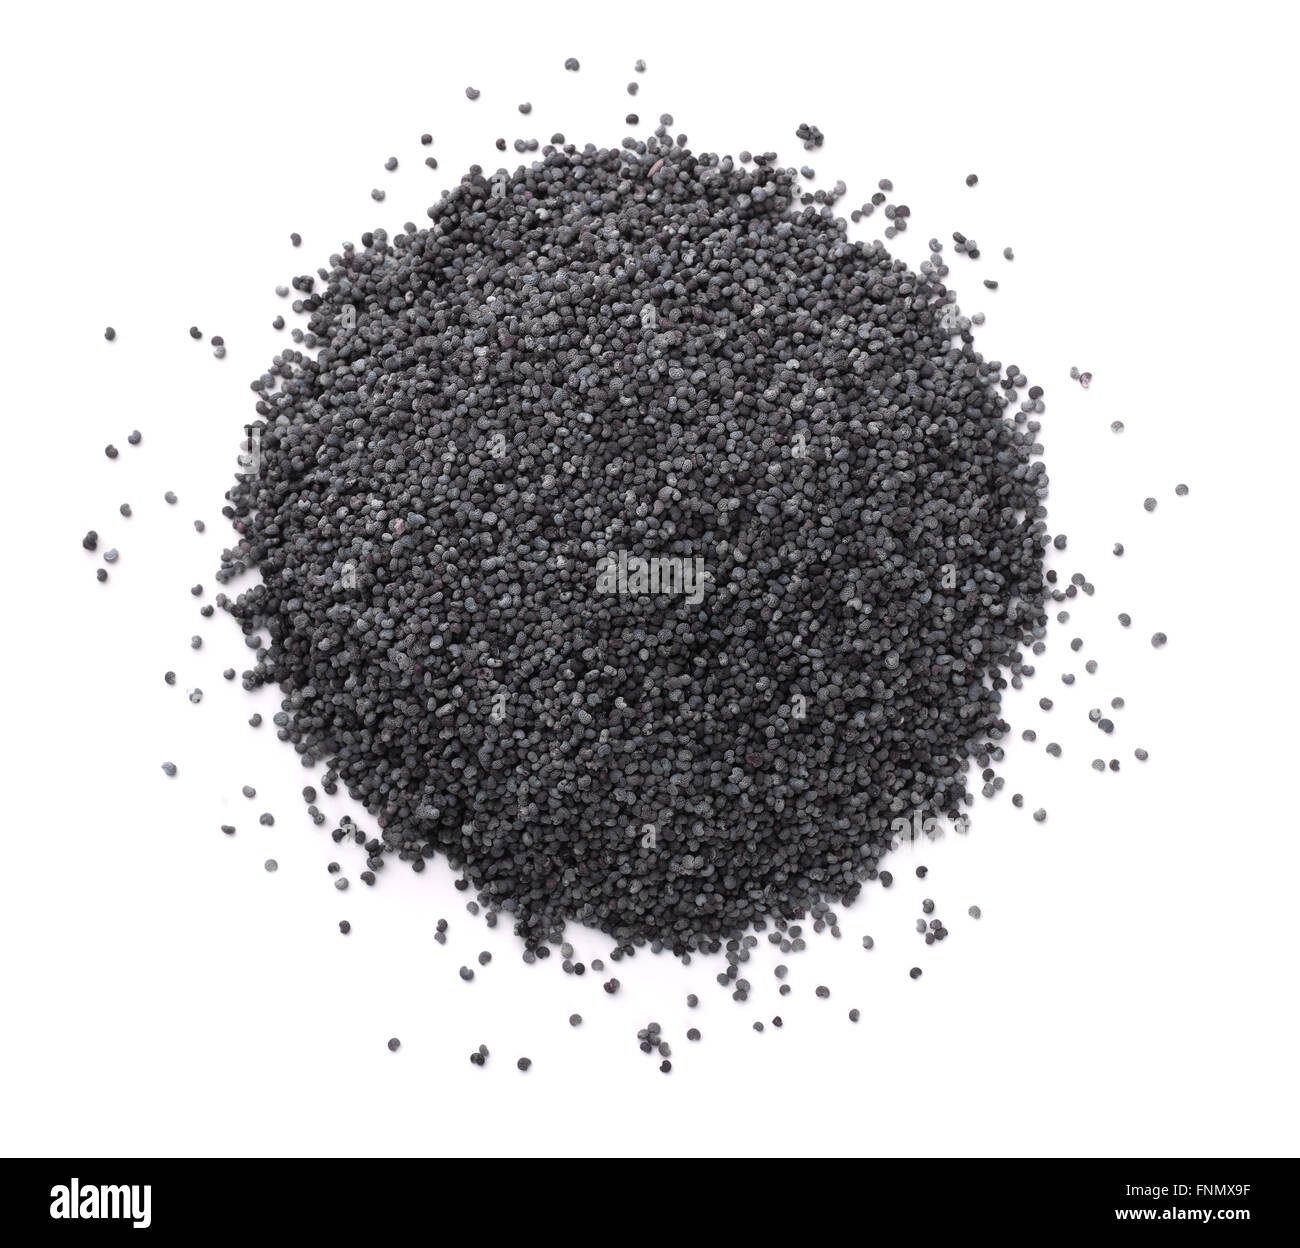 Top view of poppy seeds isolated on white - Stock Image